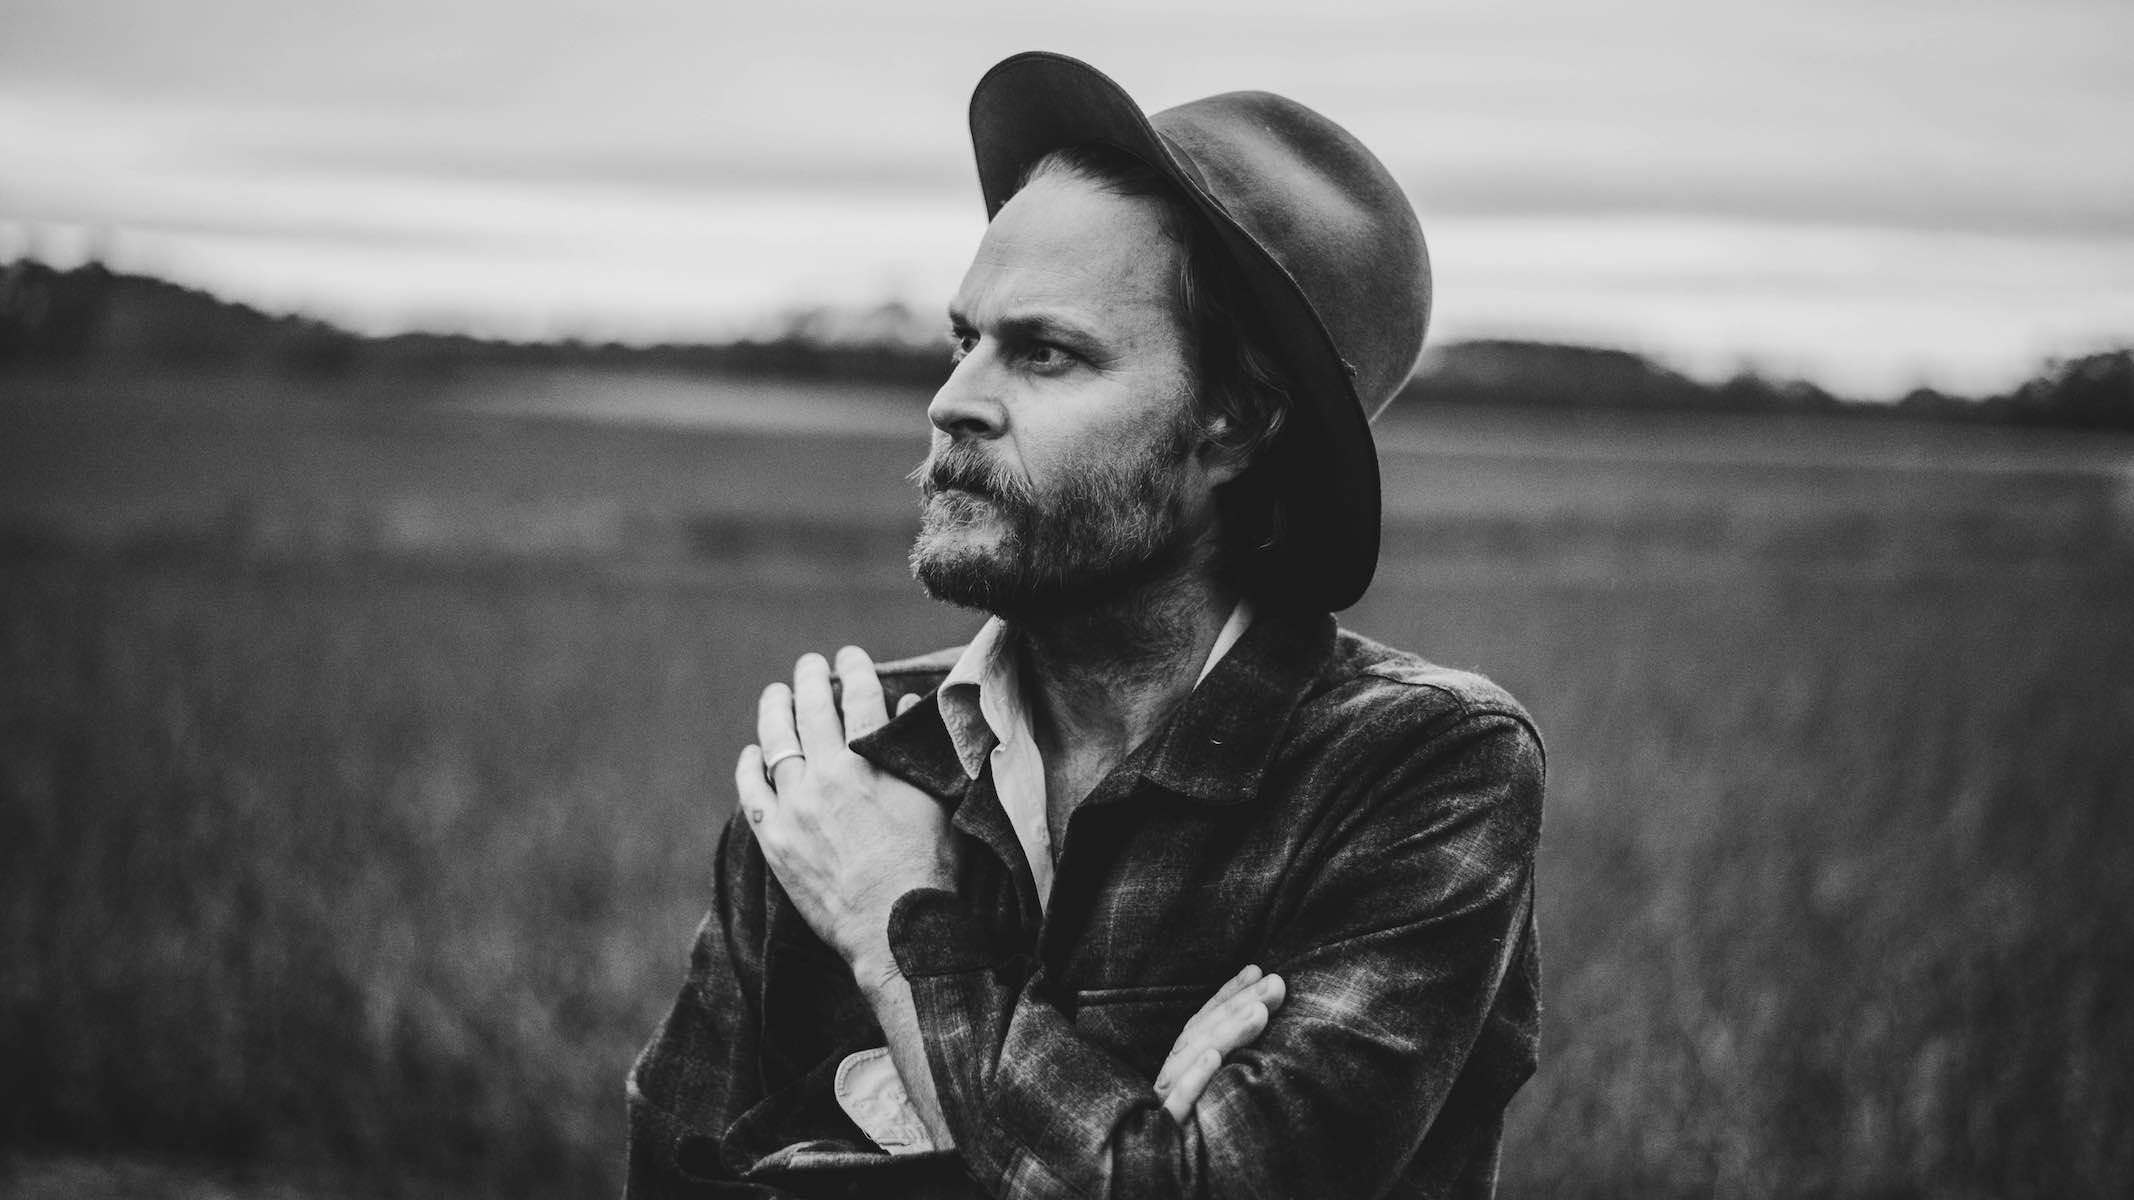 Hiss Golden Messenger's Righteous, Wandering Road Map